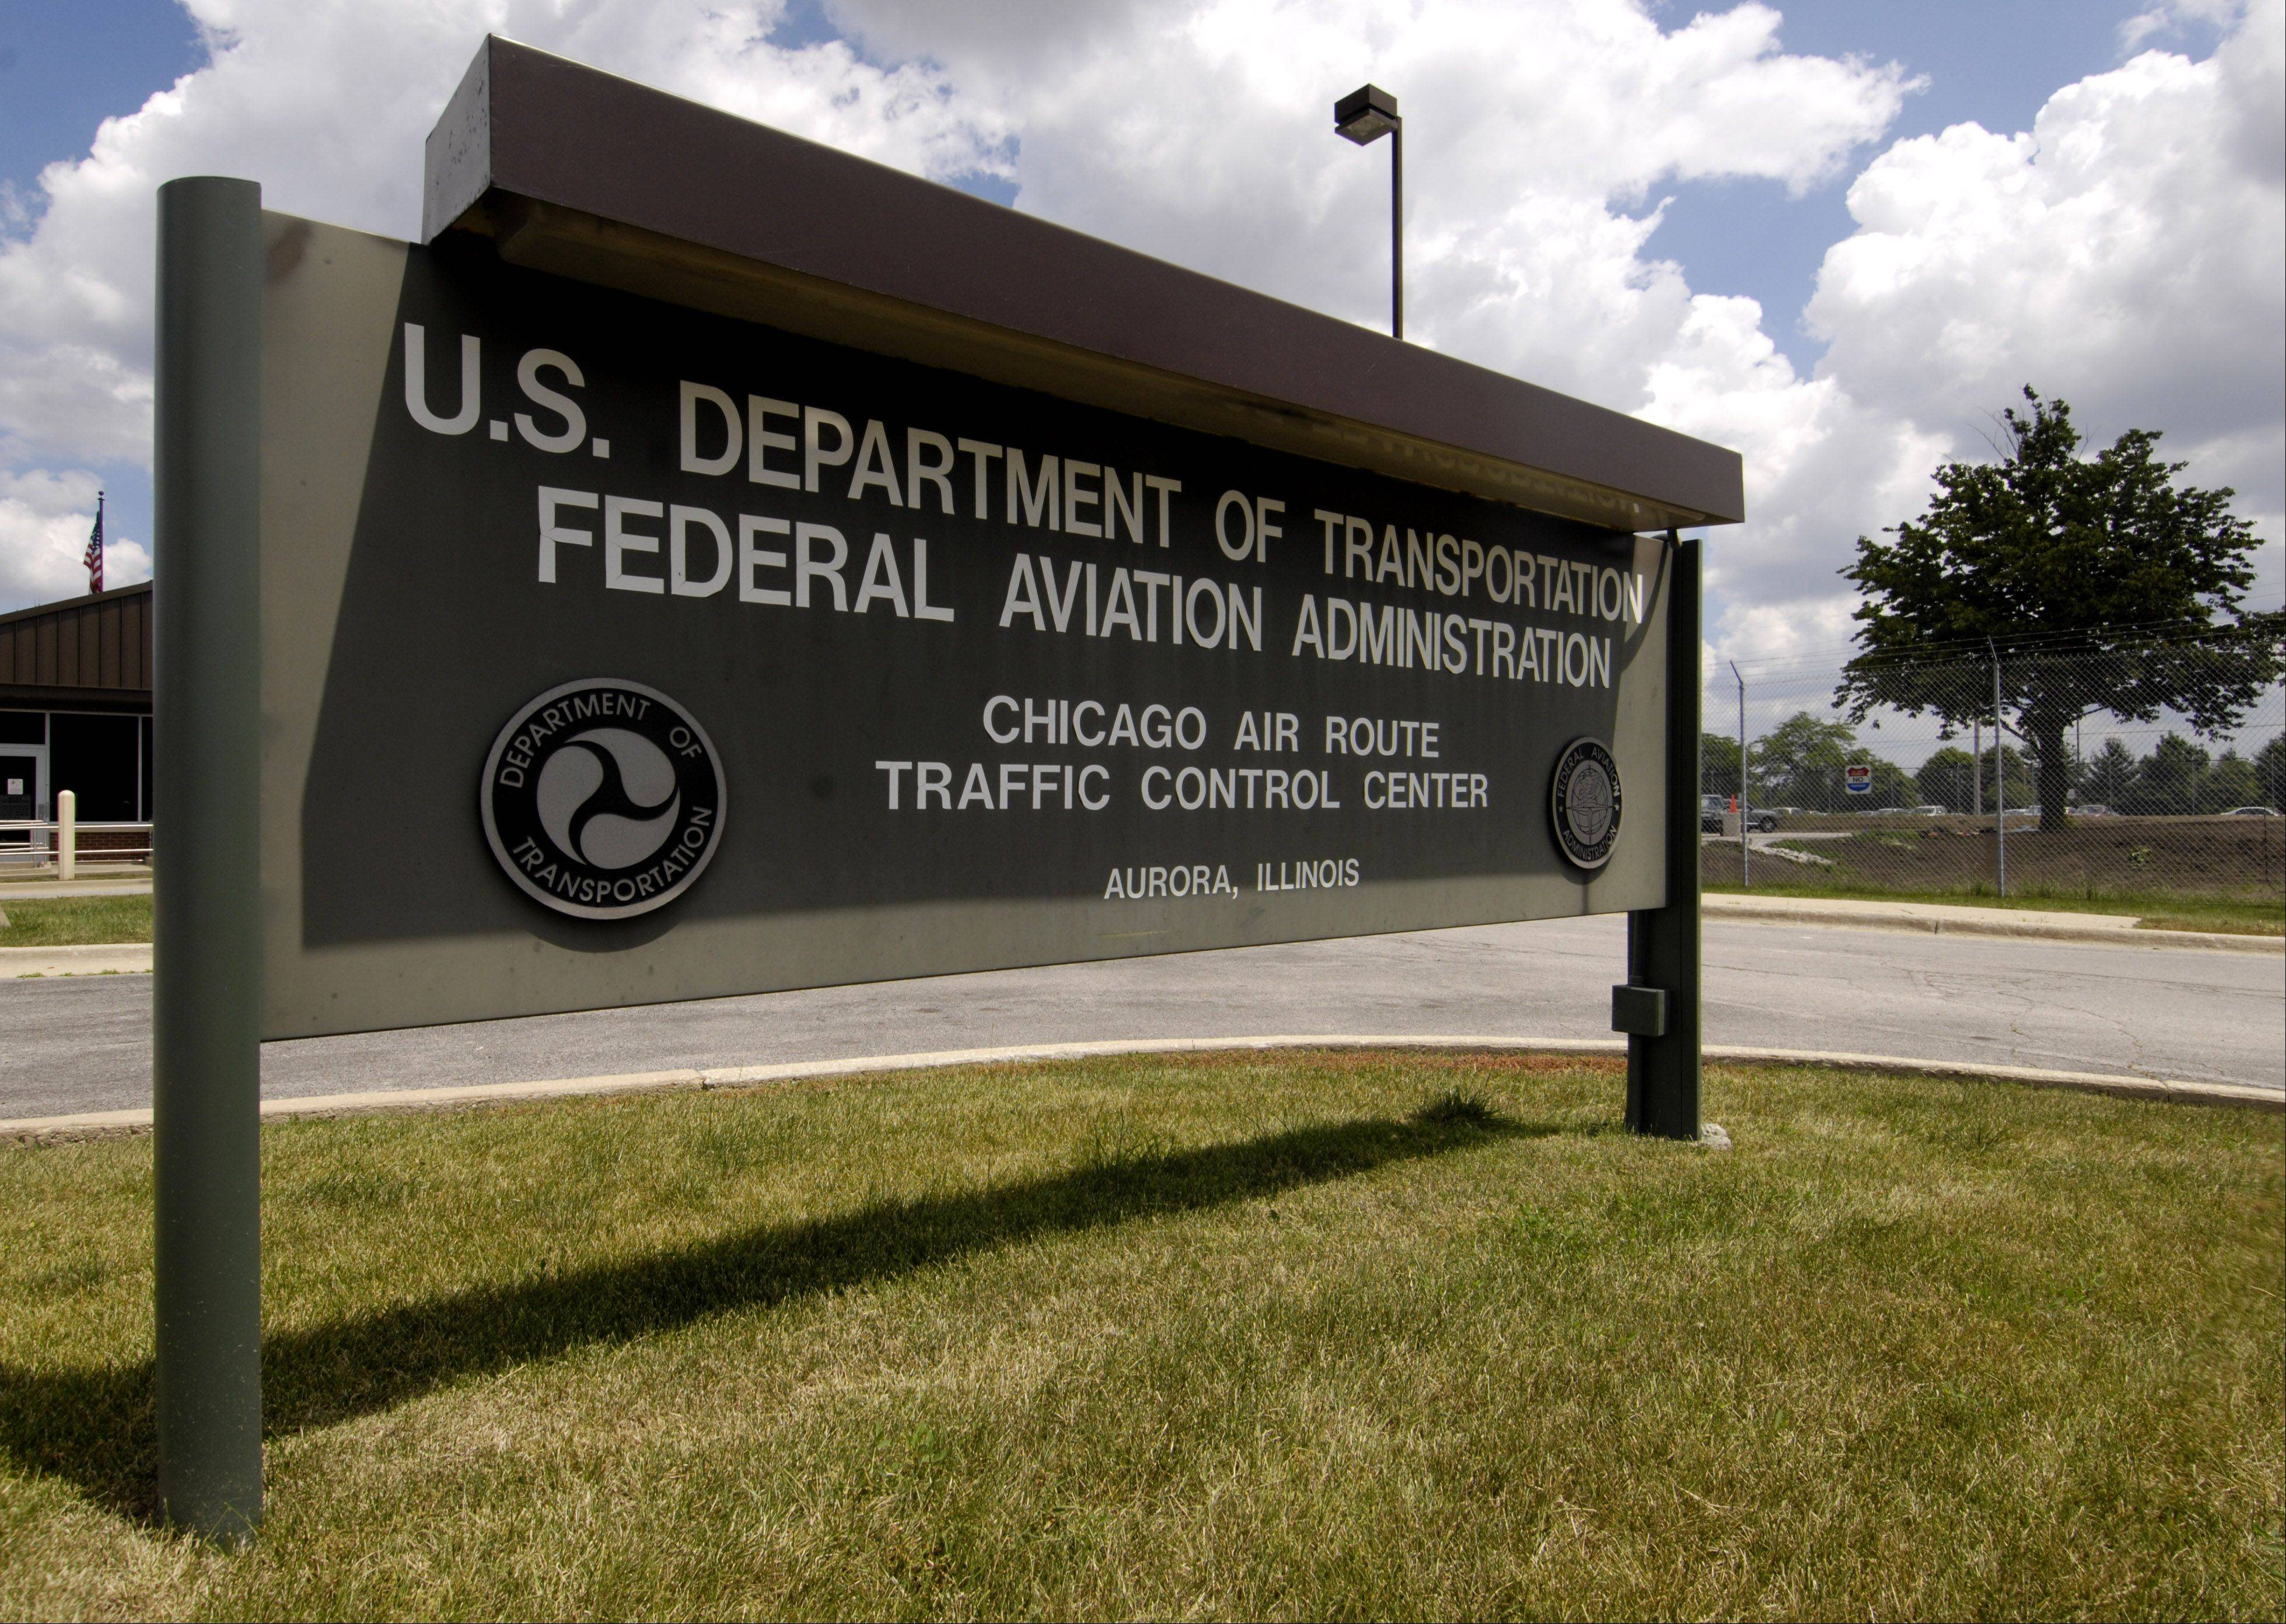 The entrance sign to the U.S. Department of Transportation's FAA Chicago Air Route Traffic Control Center in Aurora.